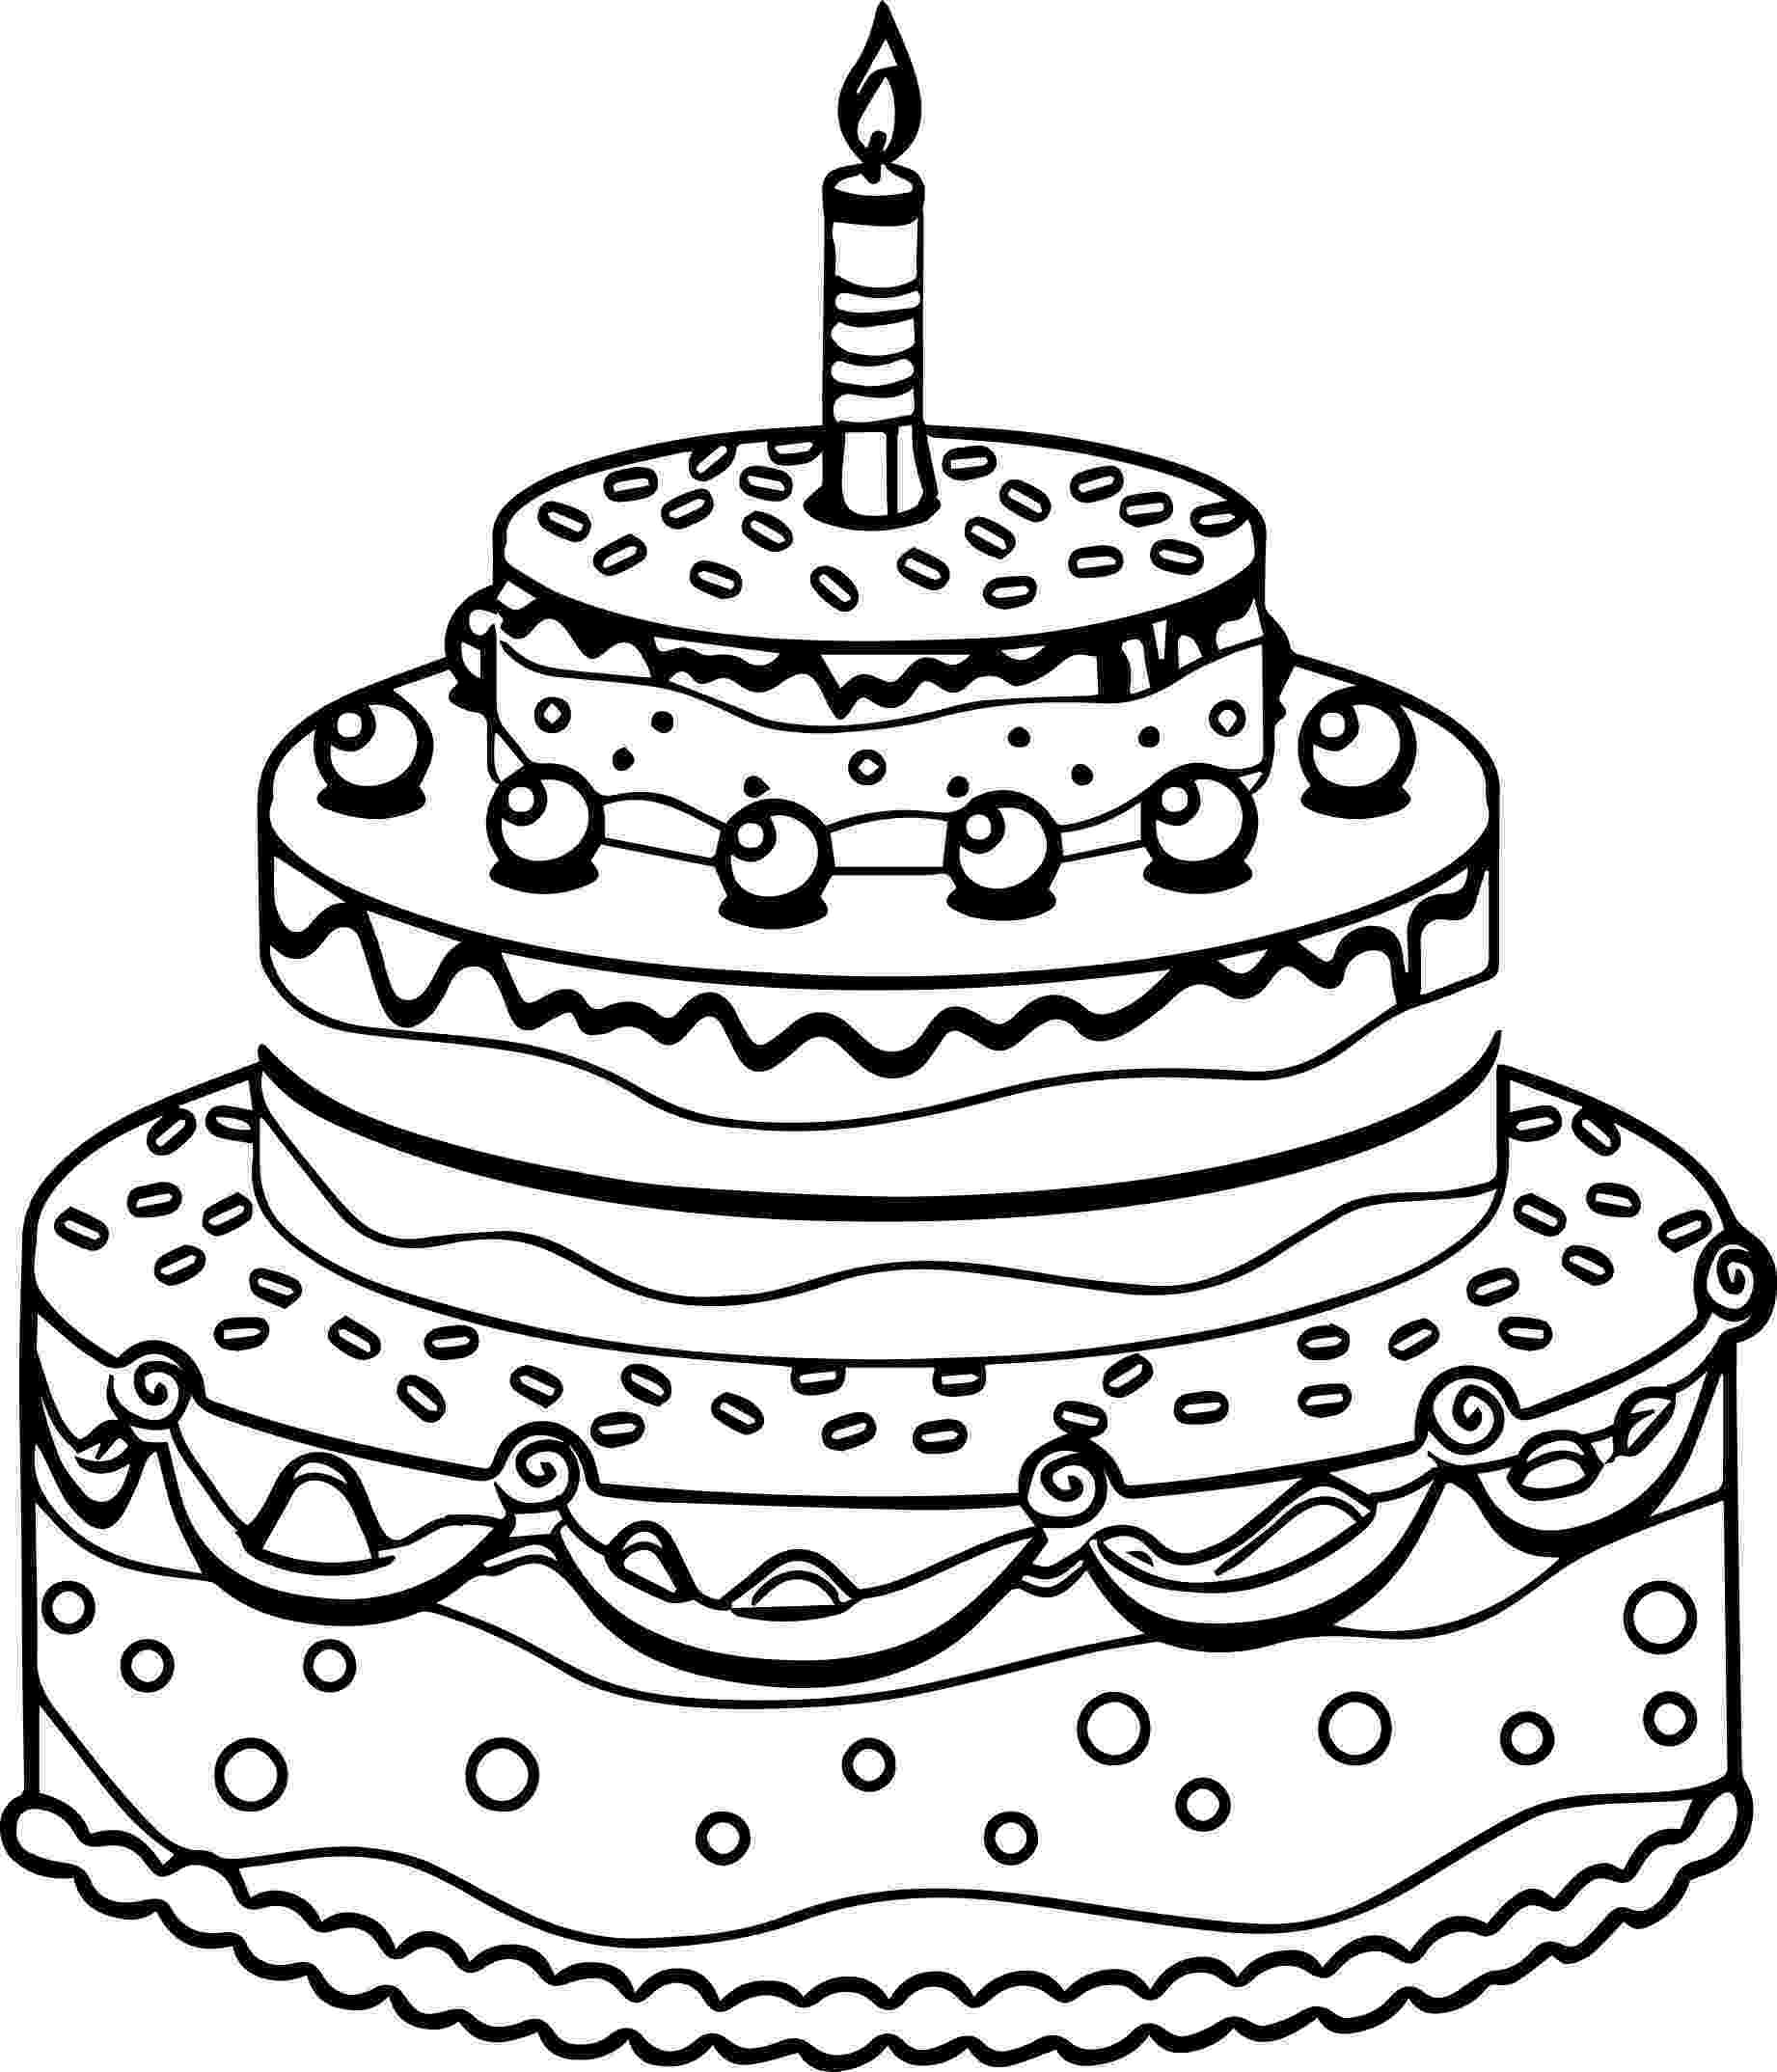 coloring page of a birthday cake birthday cake coloring pages getcoloringpagescom page coloring of birthday a cake